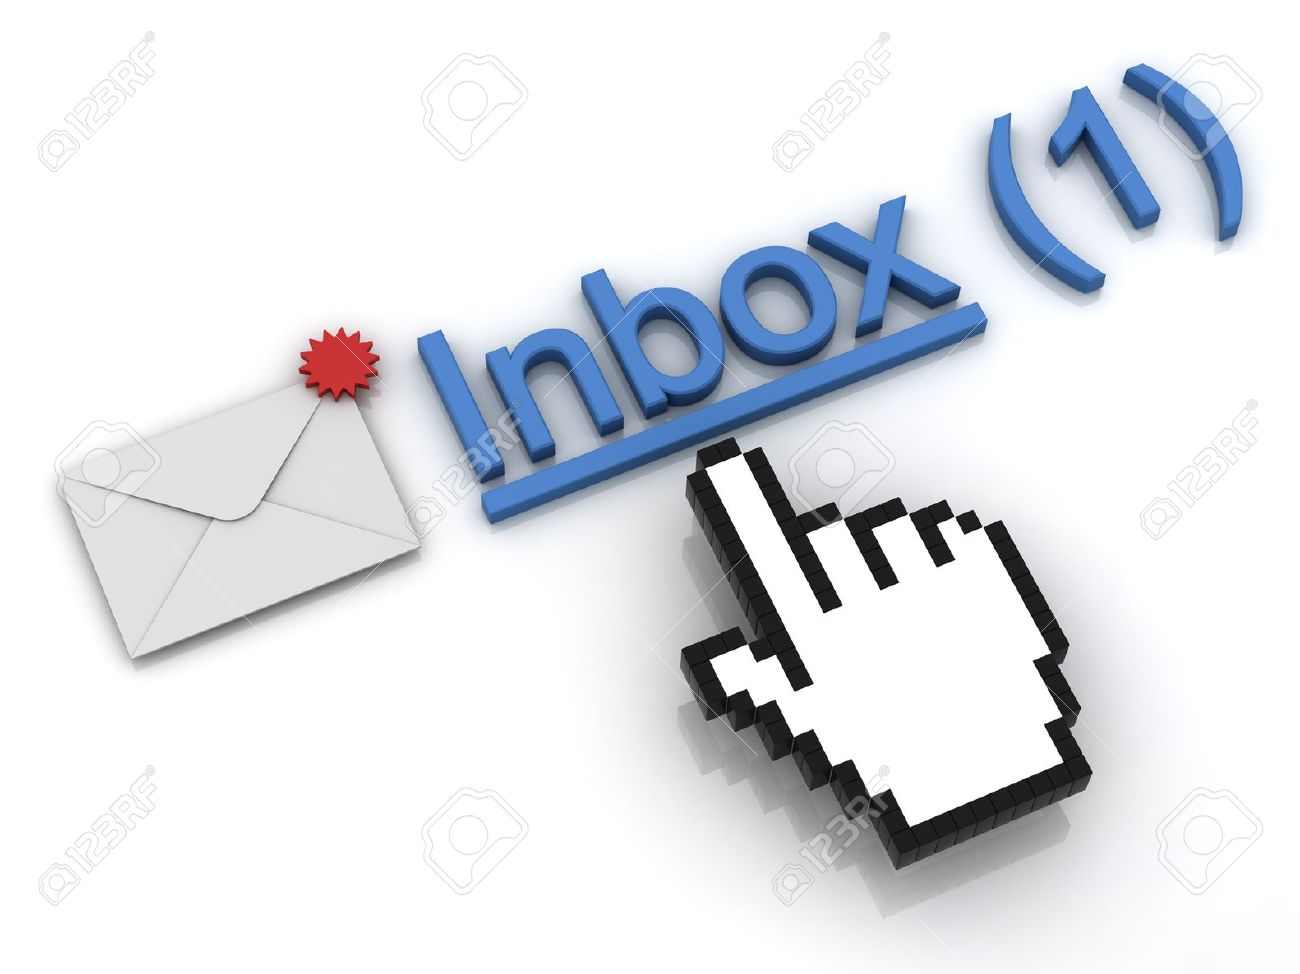 New Email Message In The Inbox Concept On White Background Stock ...